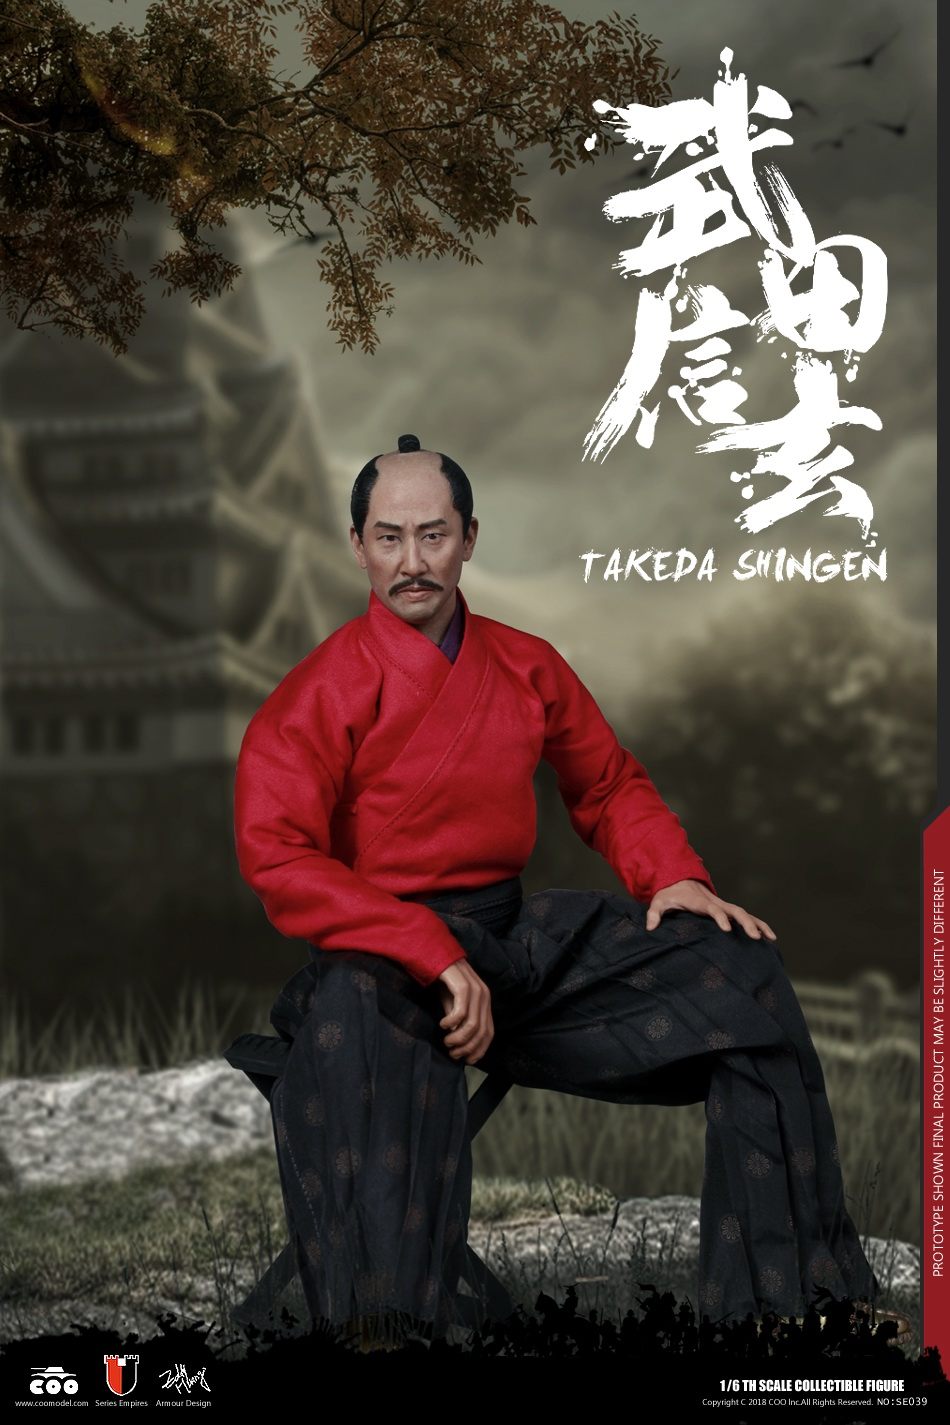 NEW PRODUCT: COOMODEL New: Empire Series Takeda Shingen 183759xqcf1ro1es6sieoq